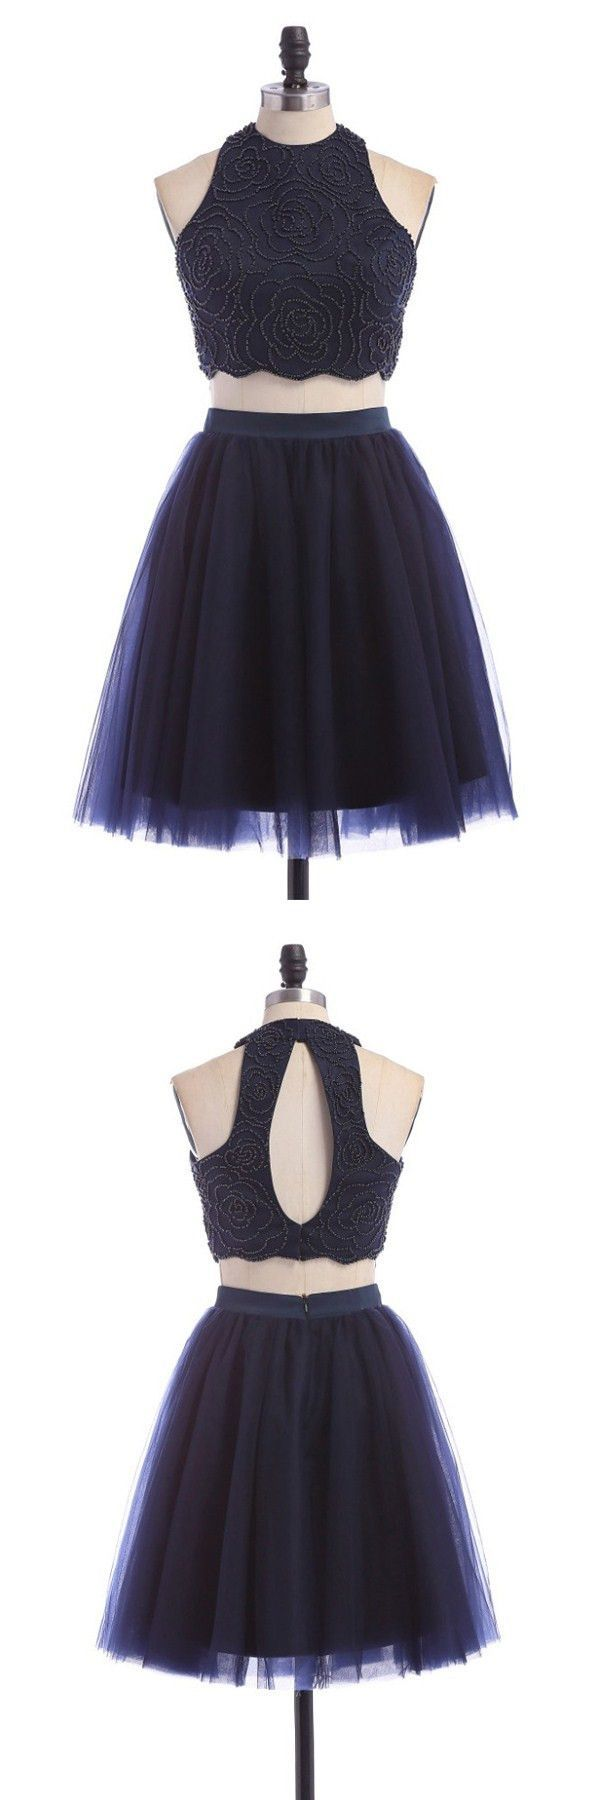 two piece homecoming dresses, 2 piece homecoming dresses, scoop homecomging dresses, open back homecoming dresses, beaded homecoming dresses, navy blue dresses, navy homecoming dresses, short homecoming dresses